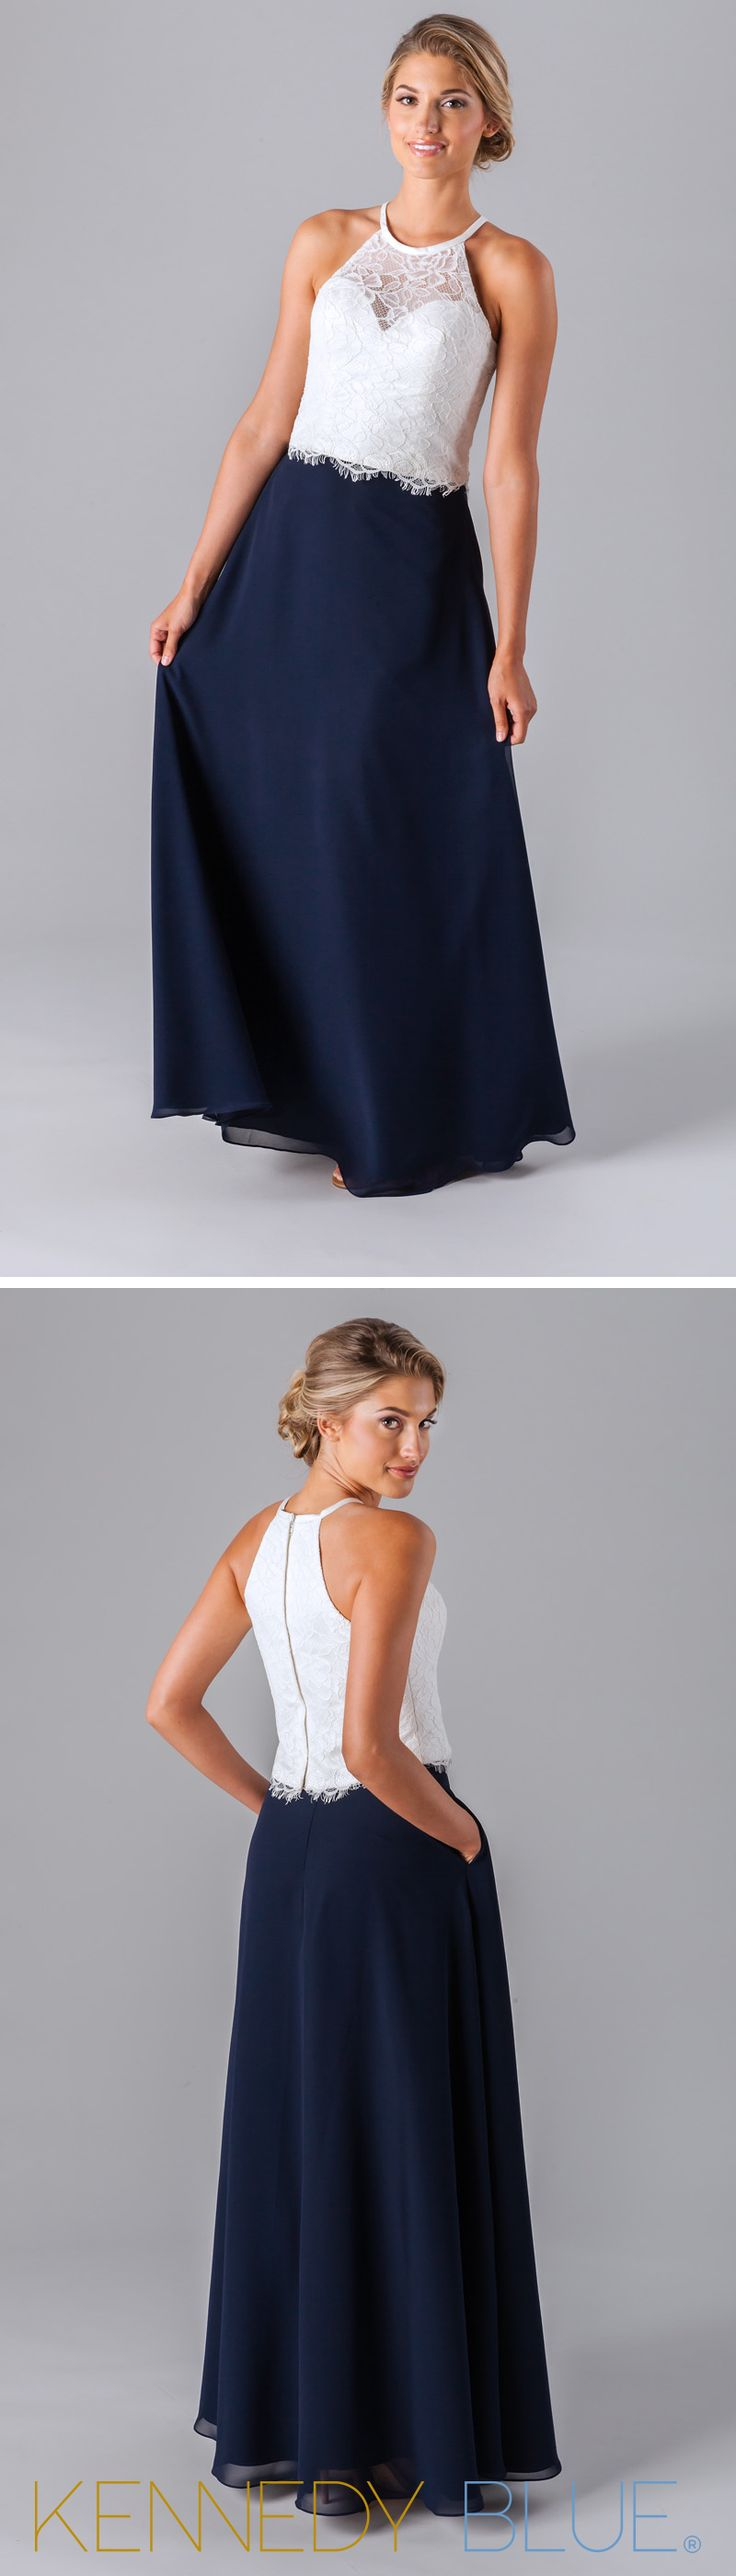 A trendy two-piece bridesmaid dress with a lace top and long chiffon skirt.